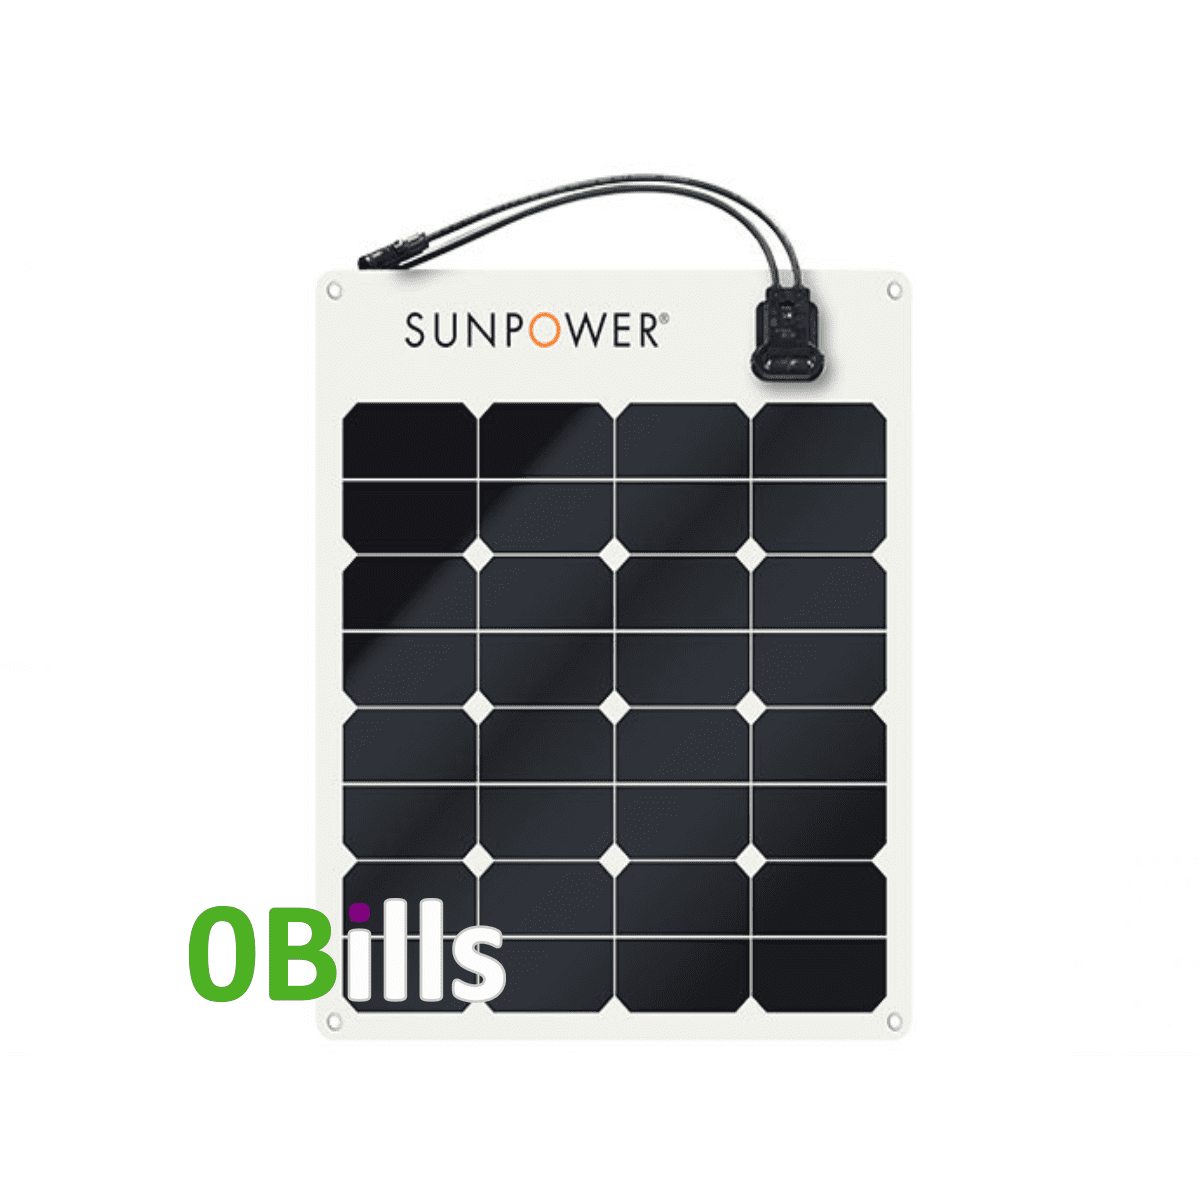 SunPower SPR-E-Flex 50 W Flexible Solar Panel